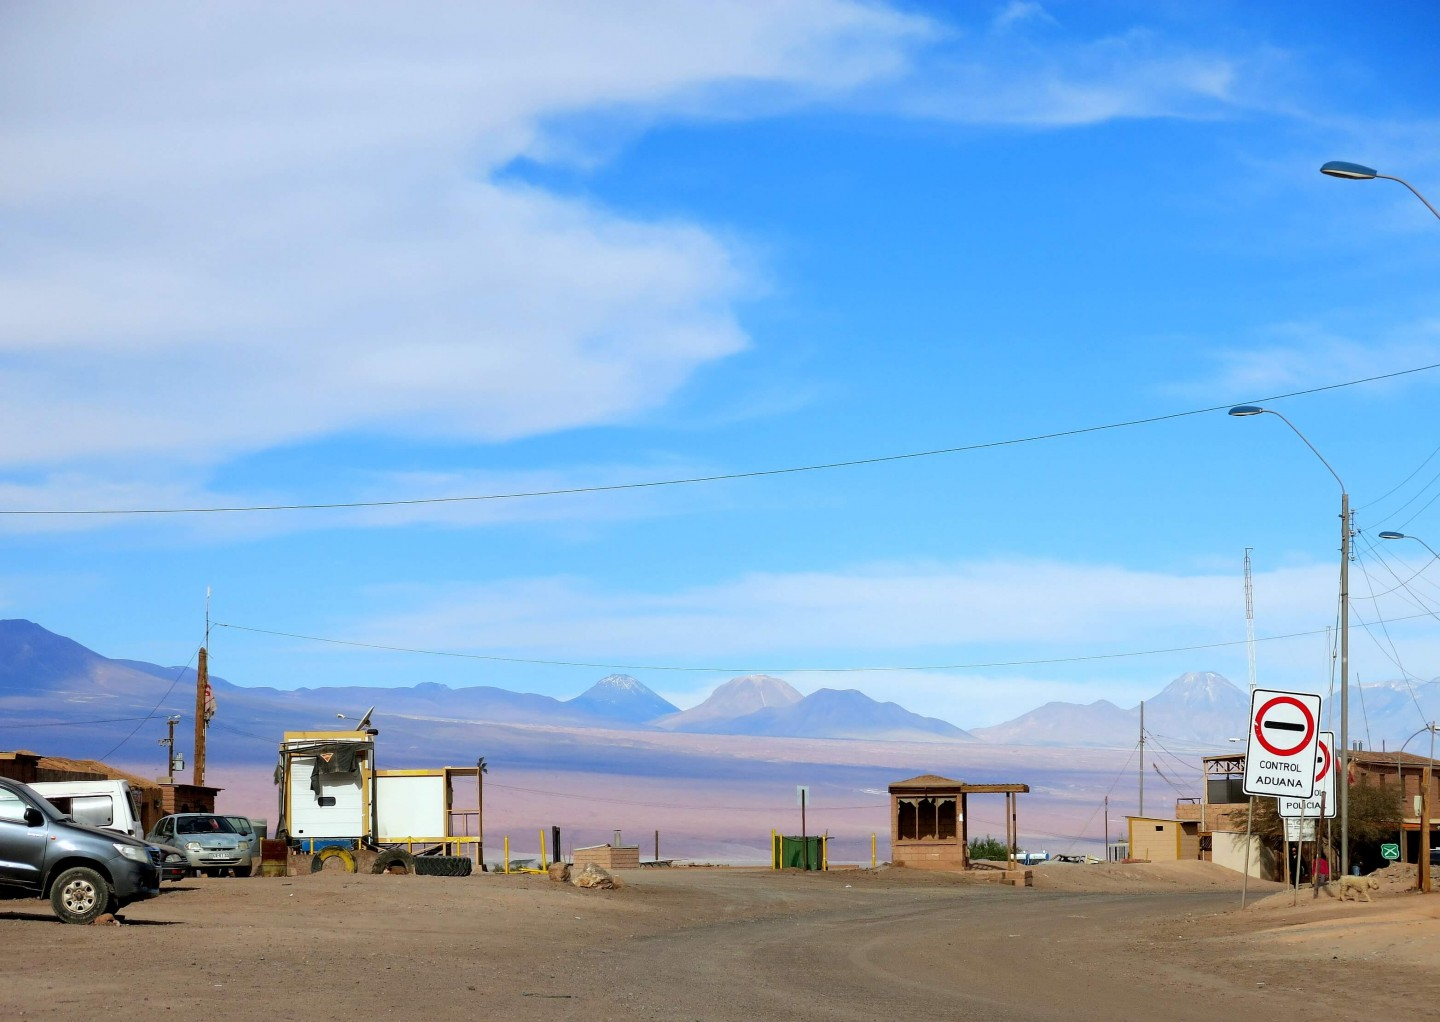 The town of San Pedro de Atacama sits rights in the middle of the beautiful landscape!